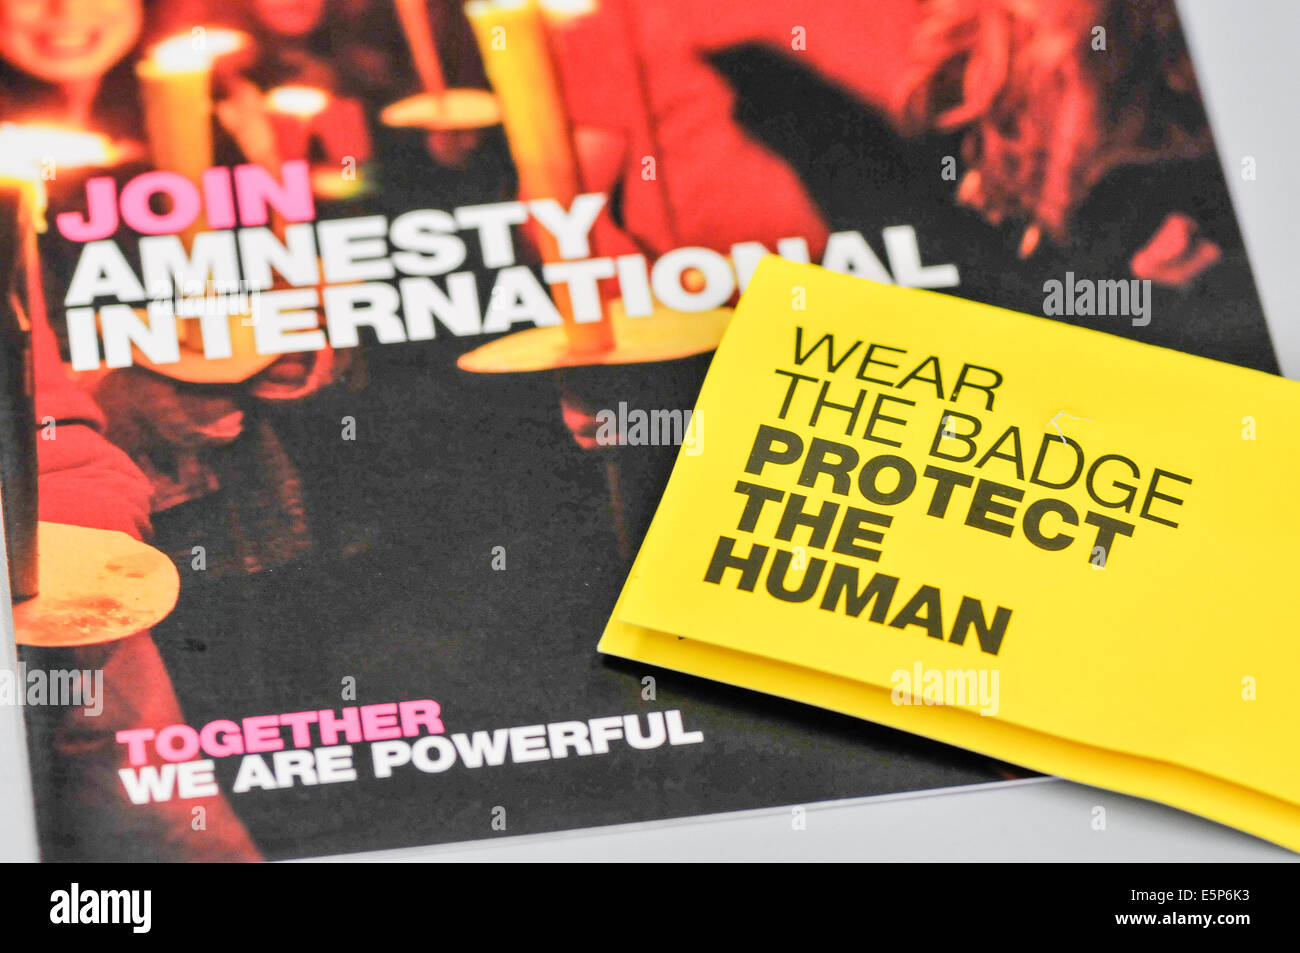 Belfast, Northern Ireland. 4th Aug, 2014.  Amnesty International literature Credit:  Stephen Barnes/Alamy Live News - Stock Image